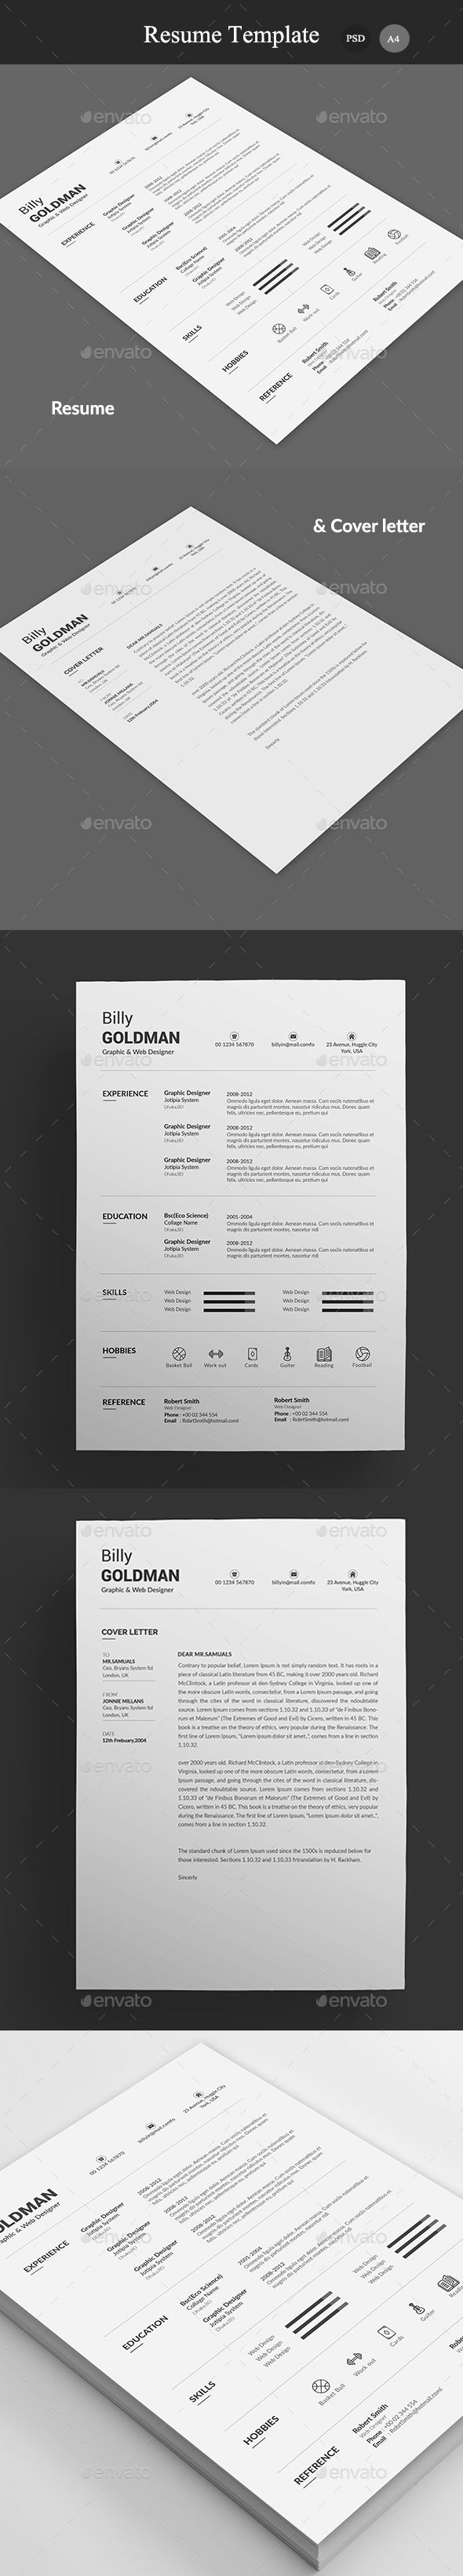 cv and covering letter%0A Resume  u     Cover Letter Template PSD